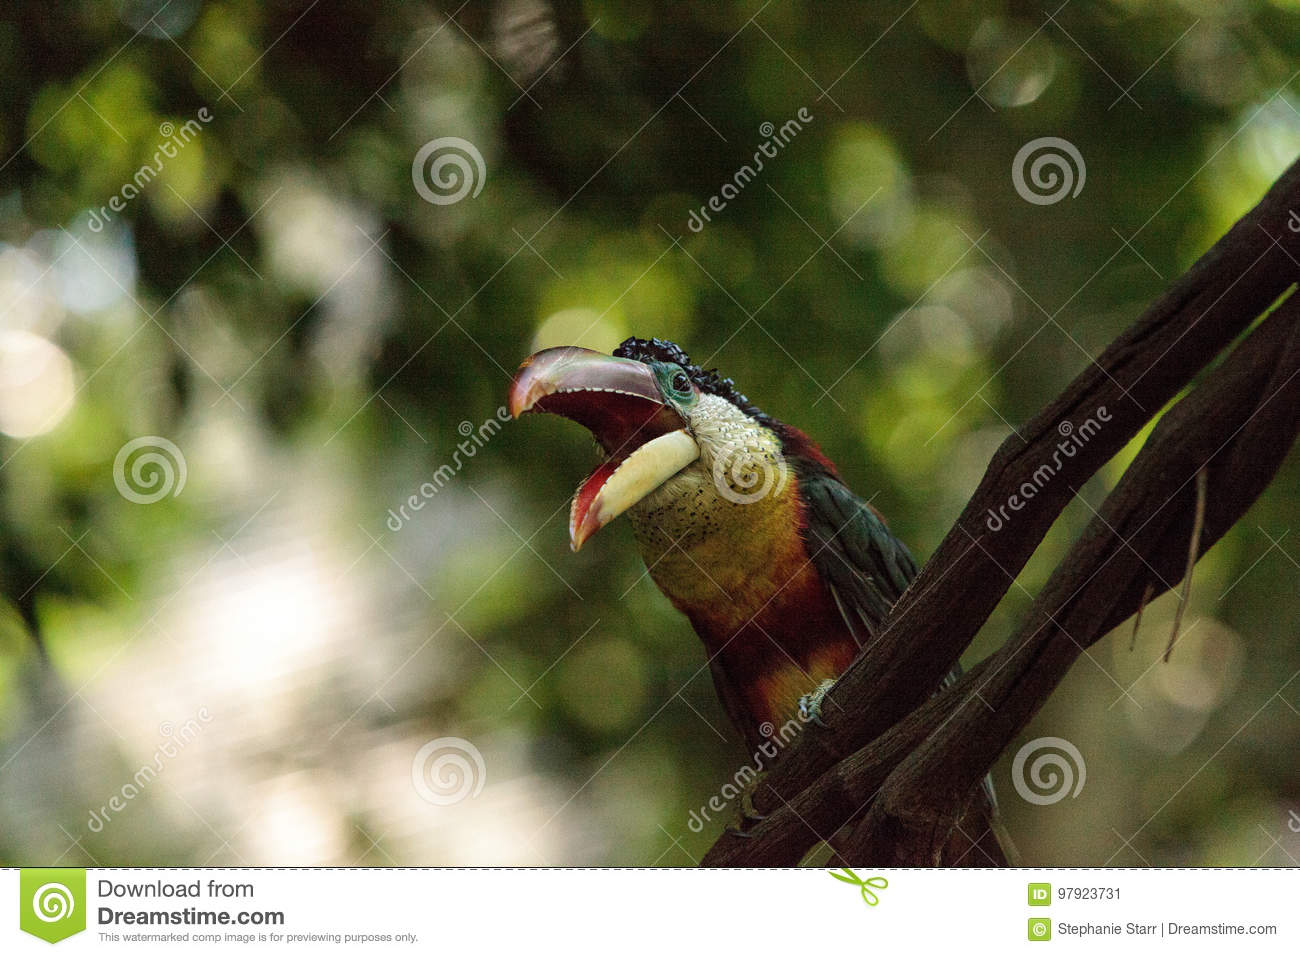 Curl crested Aracari Called Pteroglossus Beauharnaesii Stock Image     Download Curl crested Aracari Called Pteroglossus Beauharnaesii Stock Image    Image of bill  avian